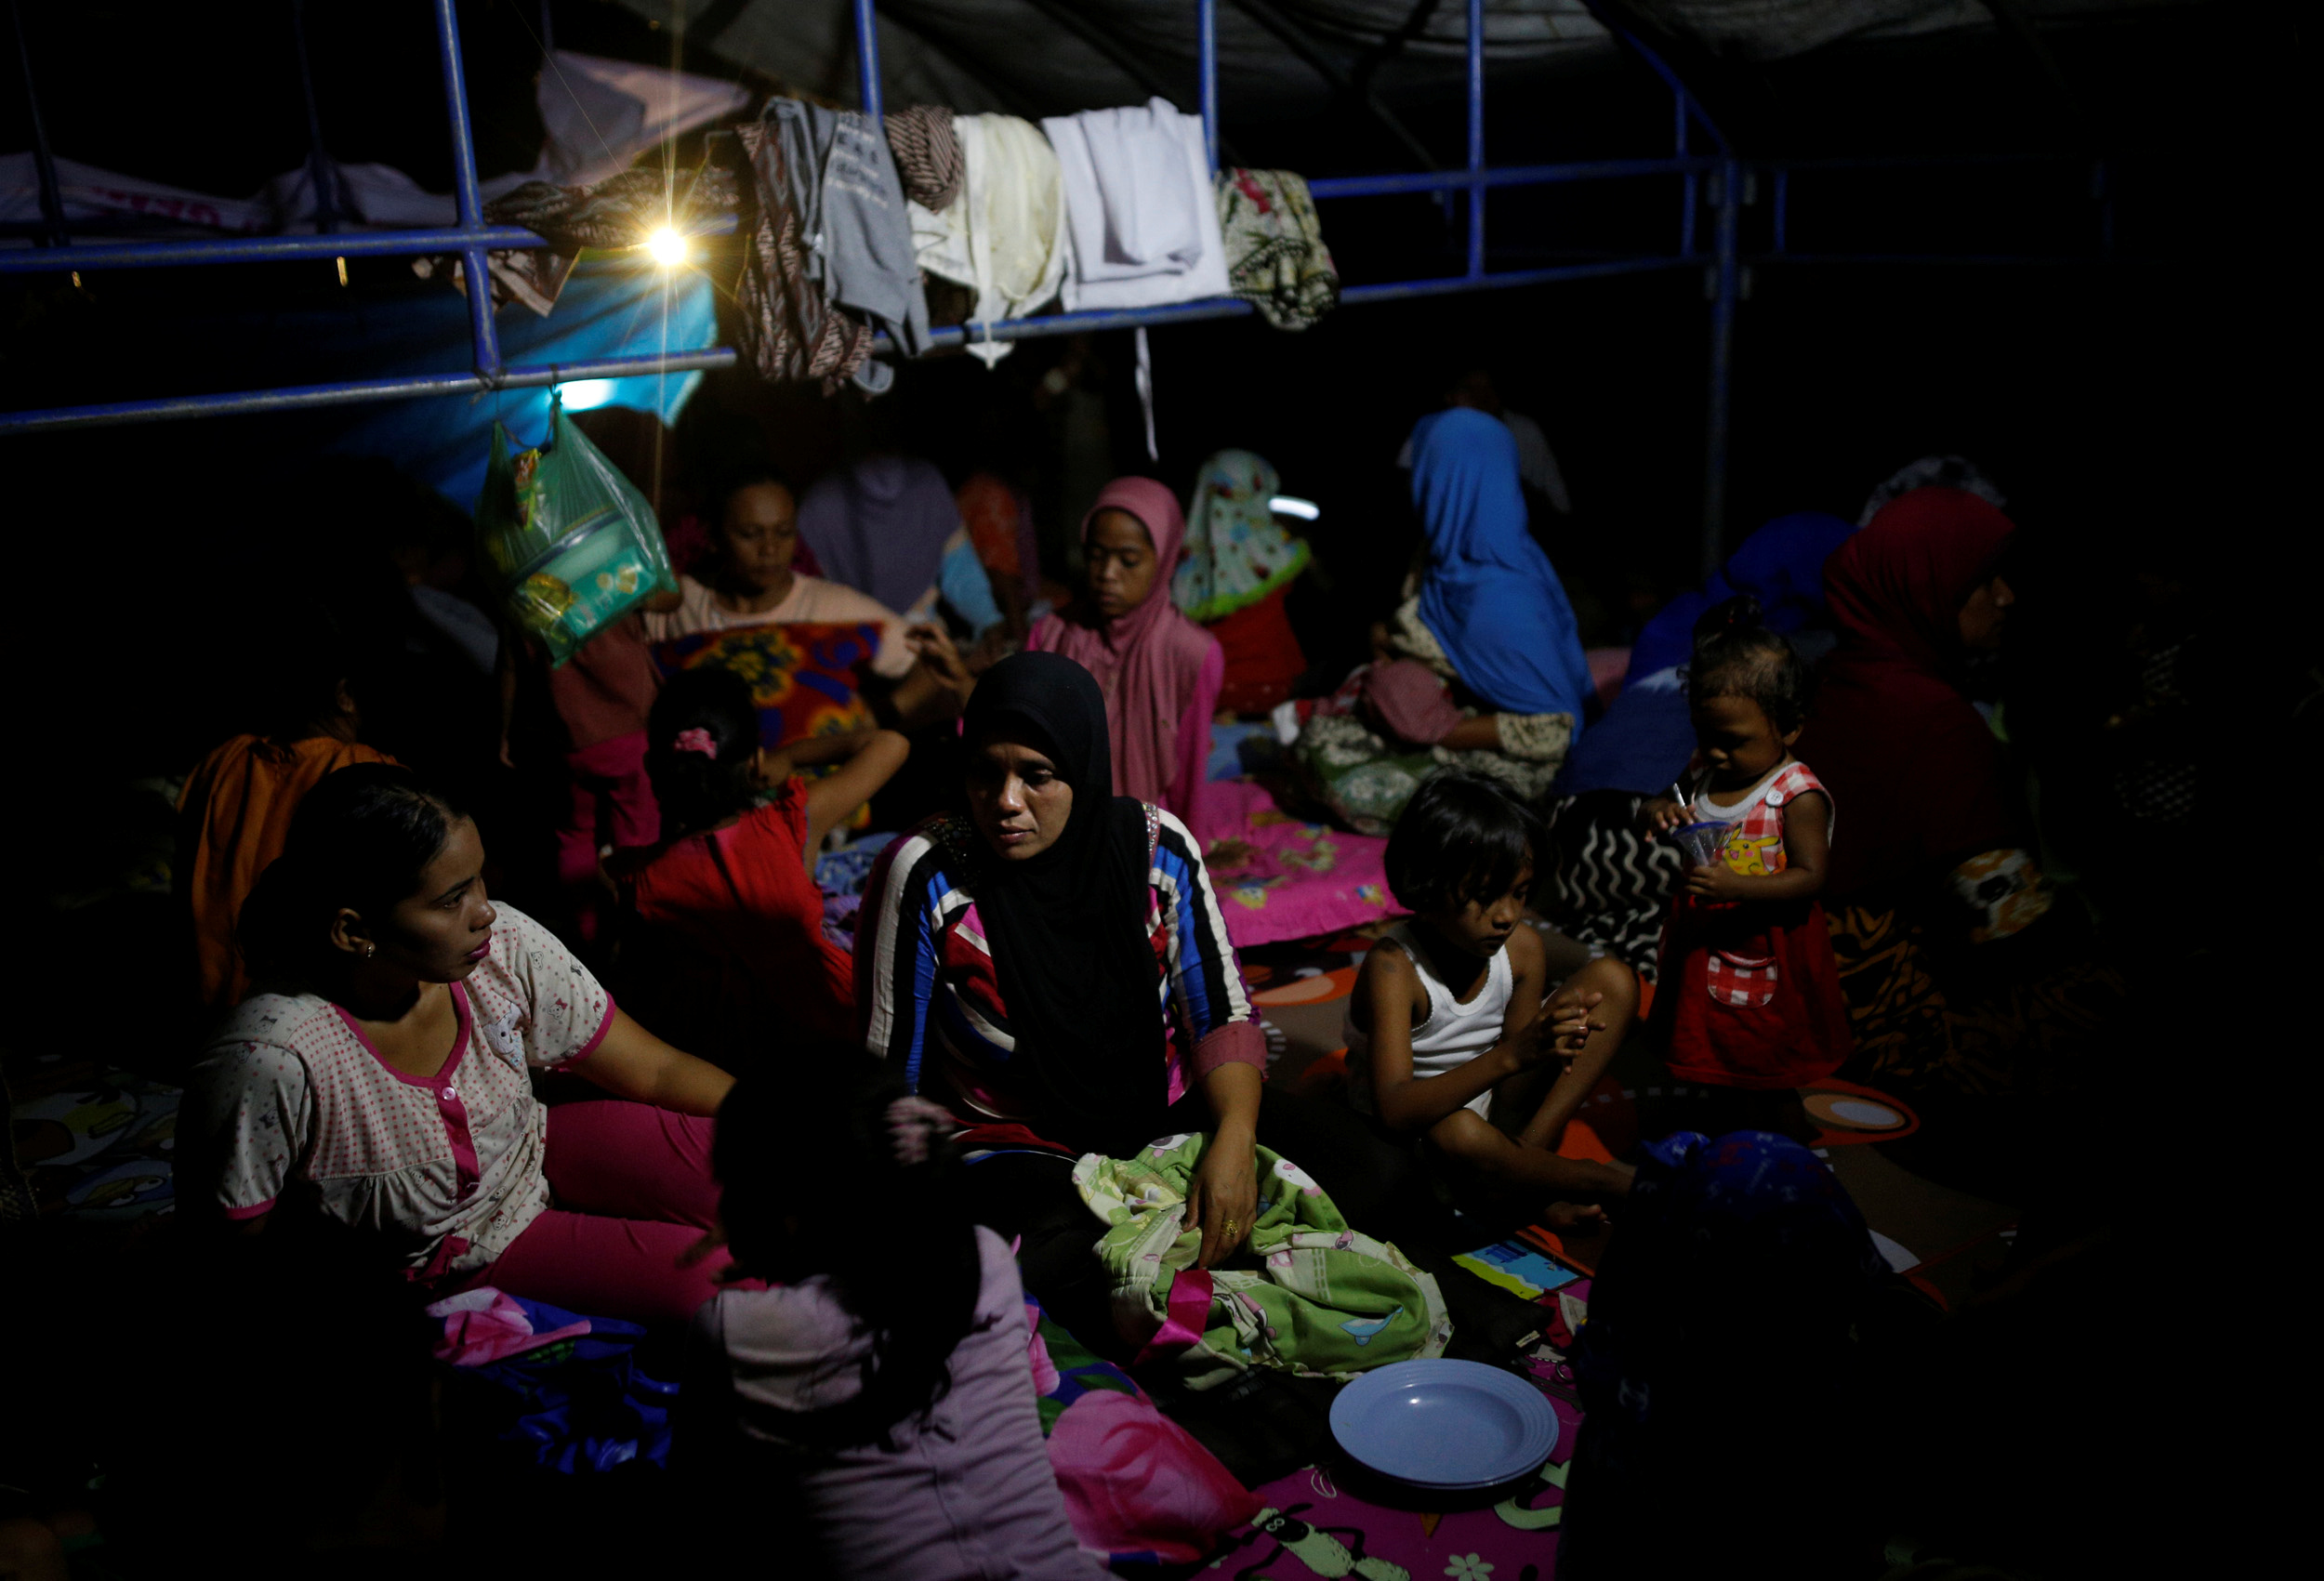 People prepare to spend the night in a makeshift outdoor shelter following a strong earthquake near Meureudu, Pidie Jaya, Aceh province, Indonesia December 8, 2016. Photo By Darren Whiteside/Reuters